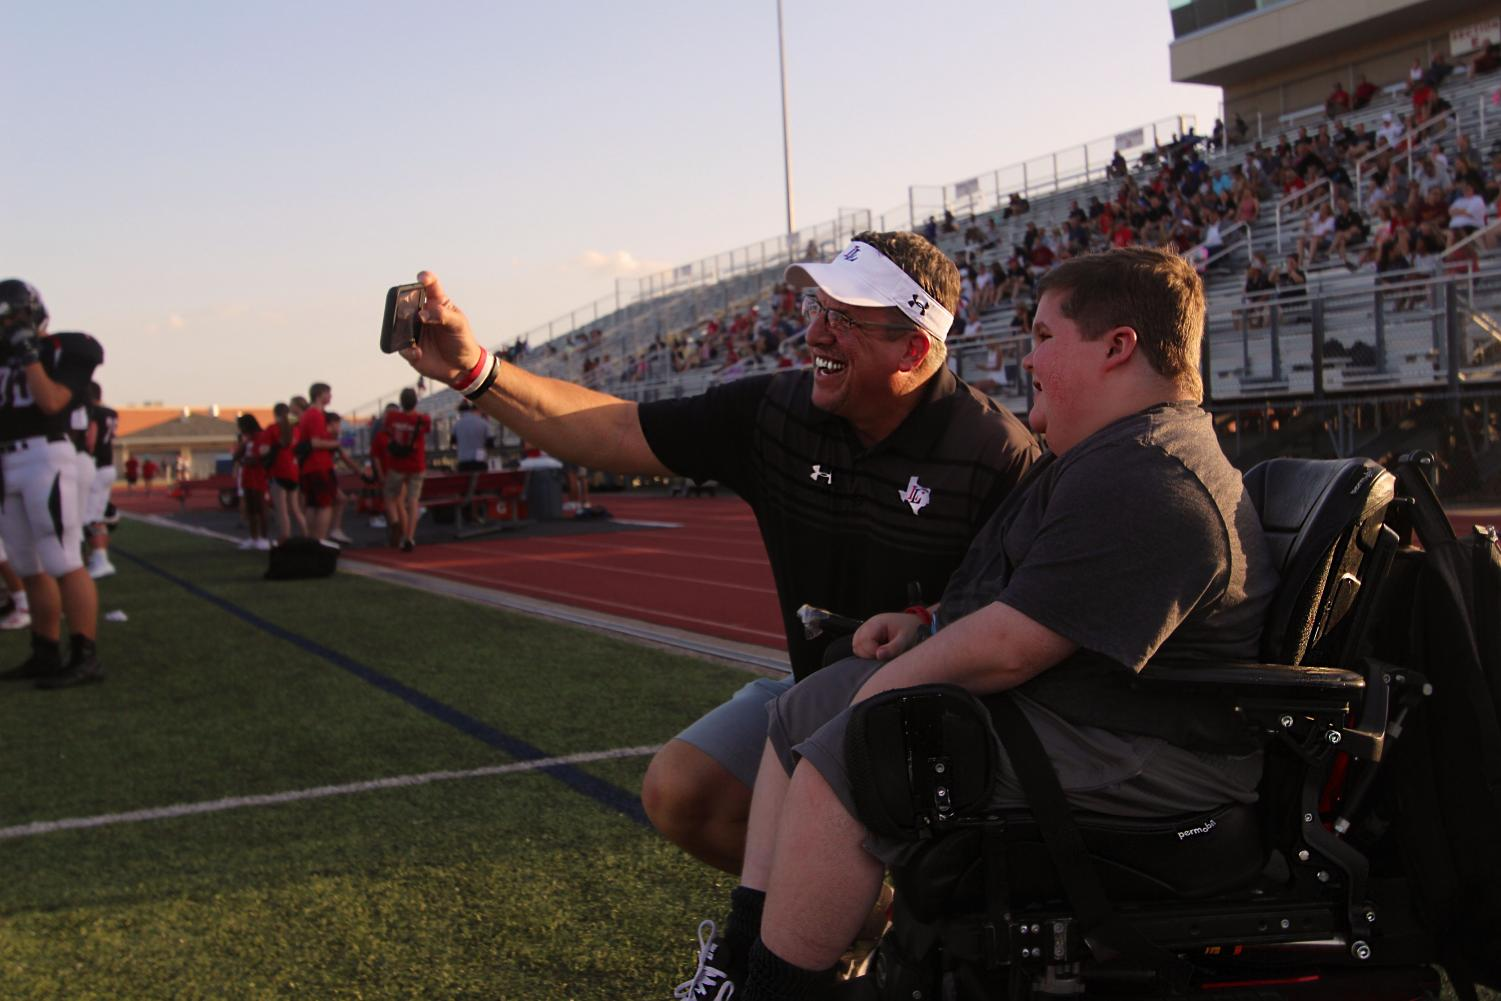 Superintendent Dr. Mike Goddard takes a selfie with Reid White on the sideline before the first play. This is Goddard's first year as superintendent, and his iconic selfies express his enthusiasm for the position.